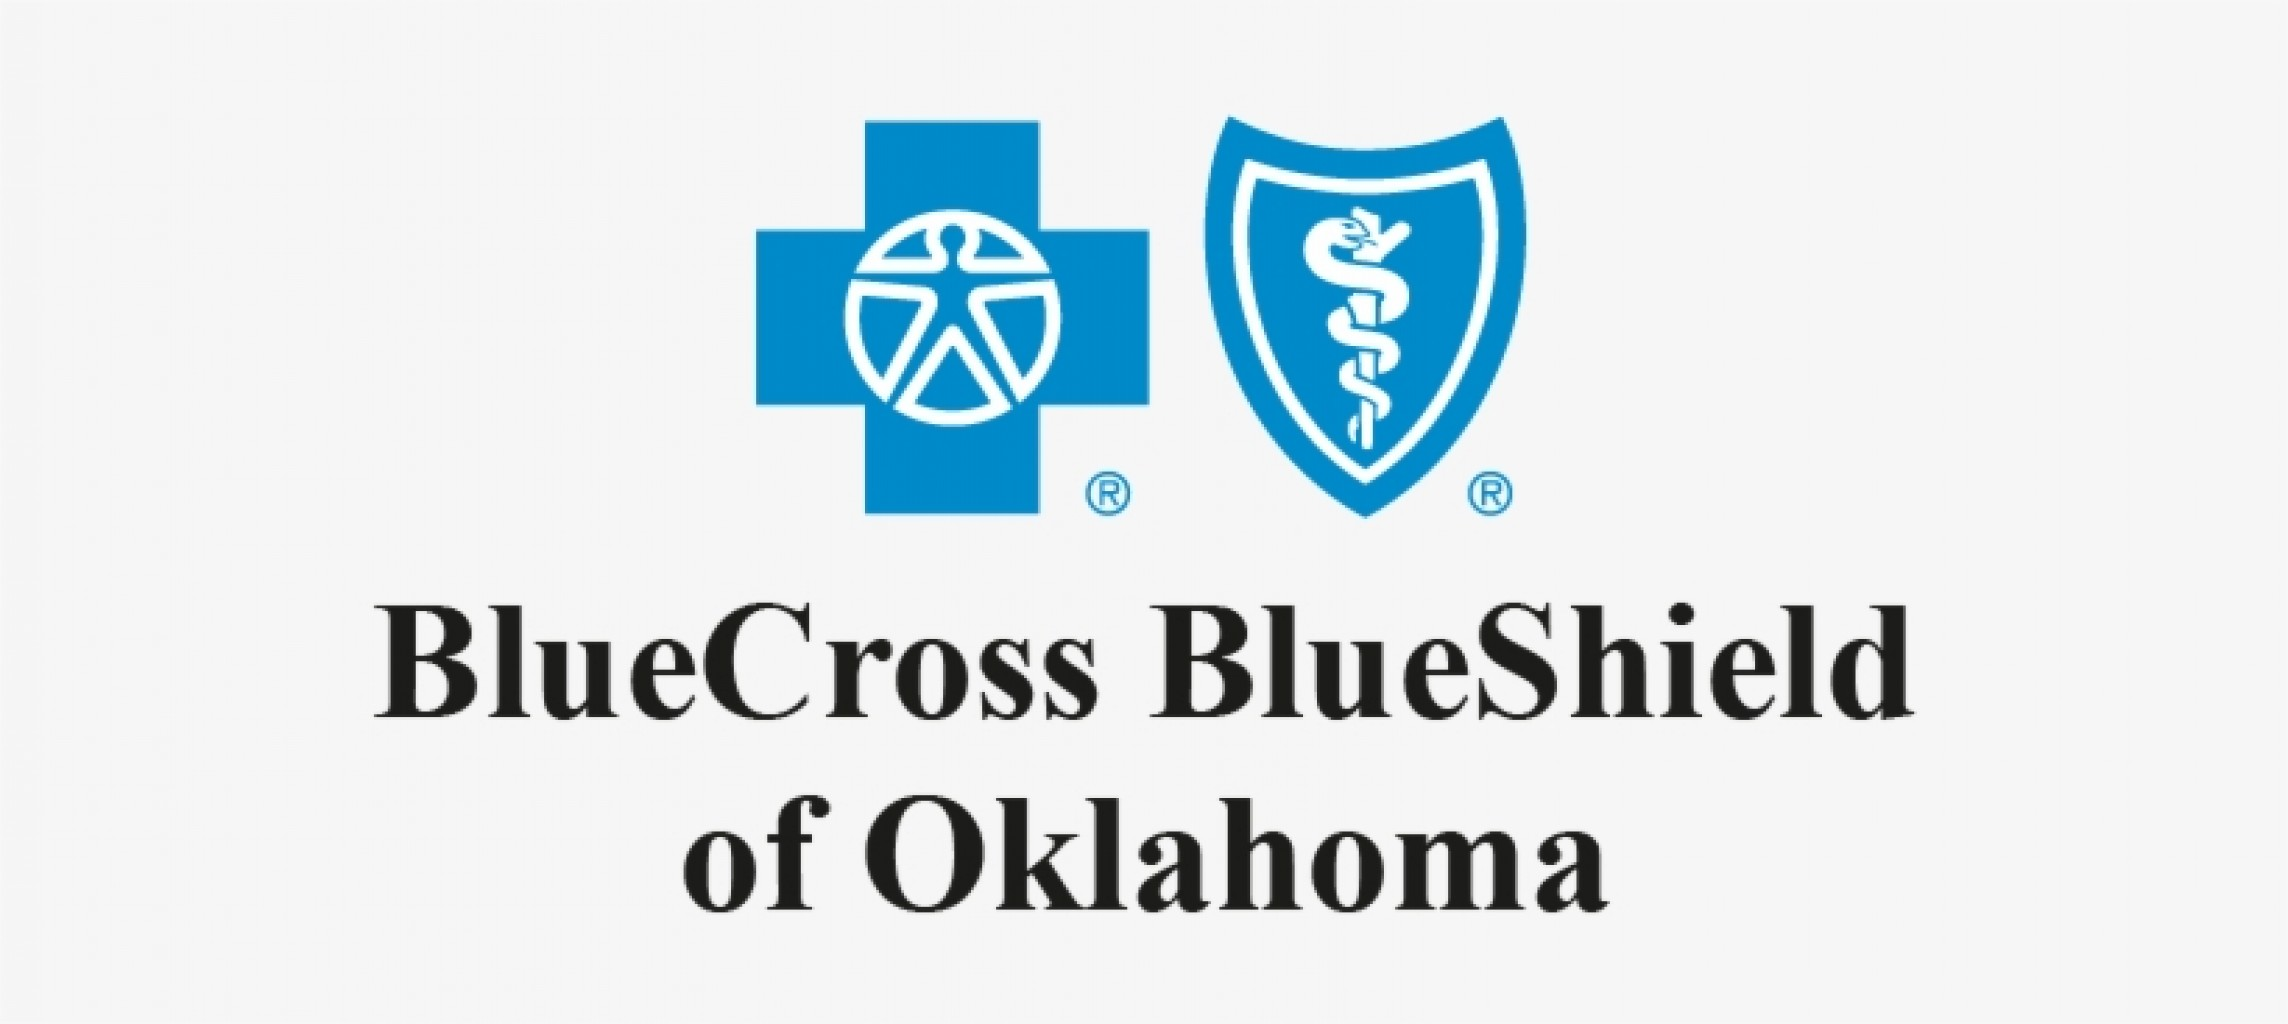 Asistencia disponible para los asegurados de Blue Cross and Blue Shield of Oklahoma  afectados por desastres naturales